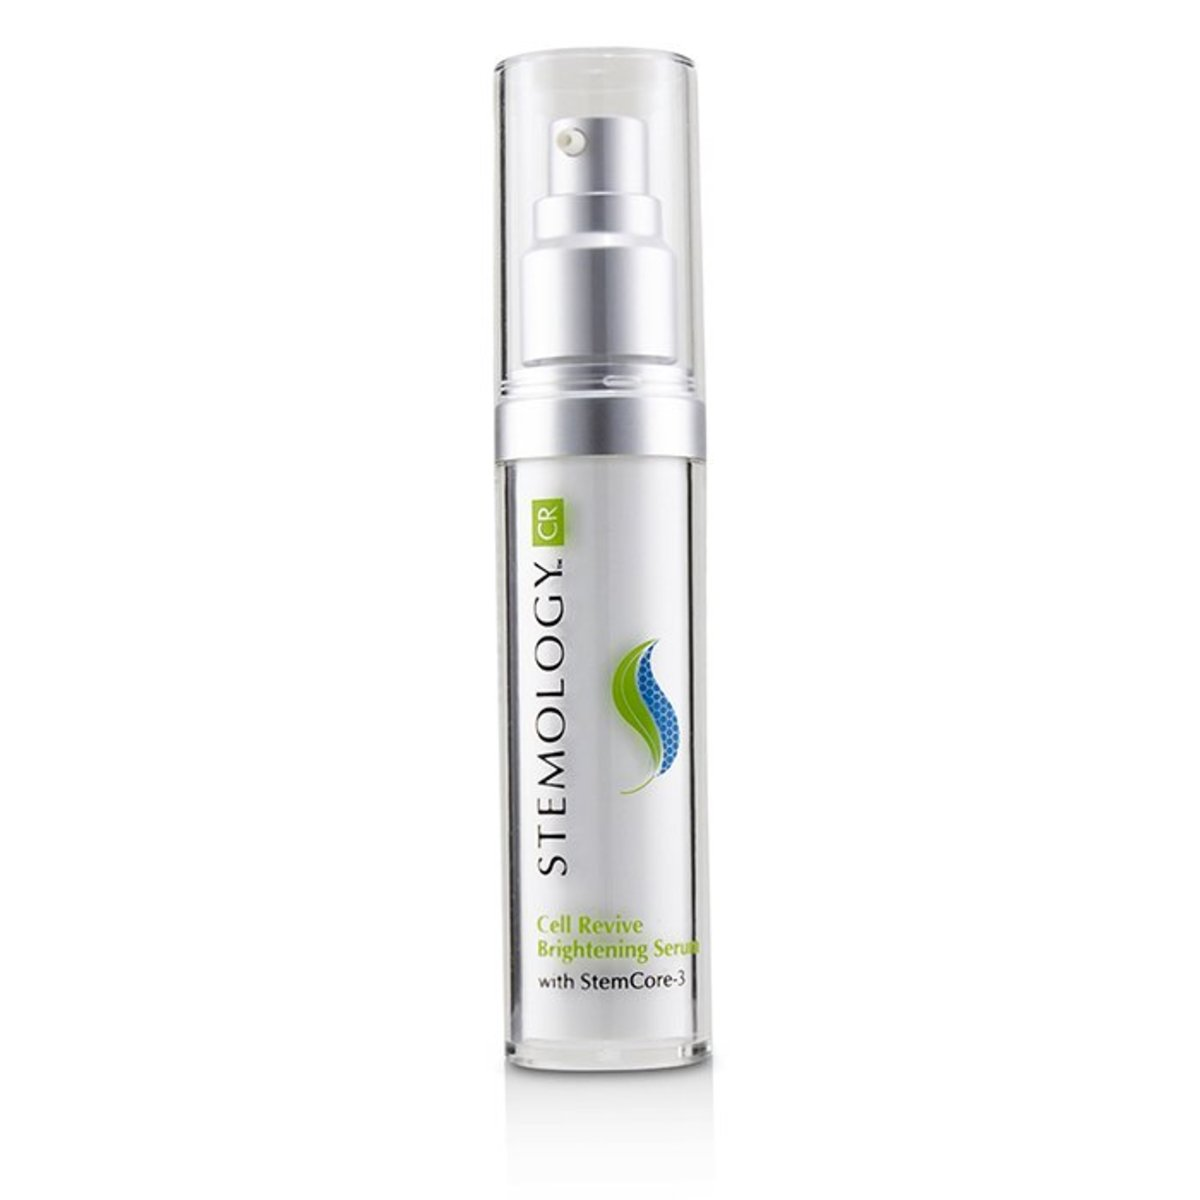 Cell Revive Brightening Serum With StemCore-3 712081 30ml [Parallel Import]